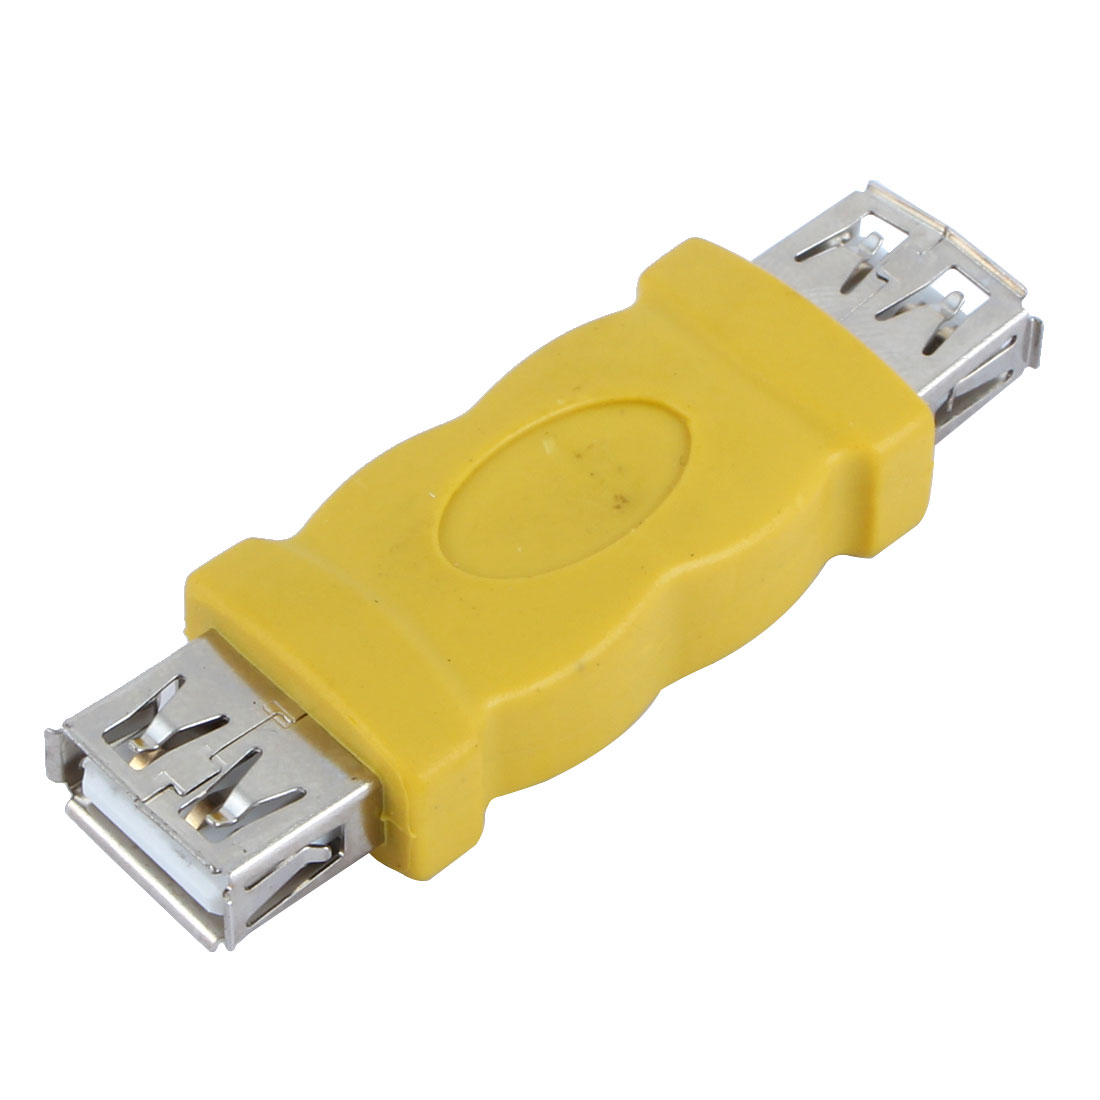 USB 2.0 Double Female Adapter Connector Yellow